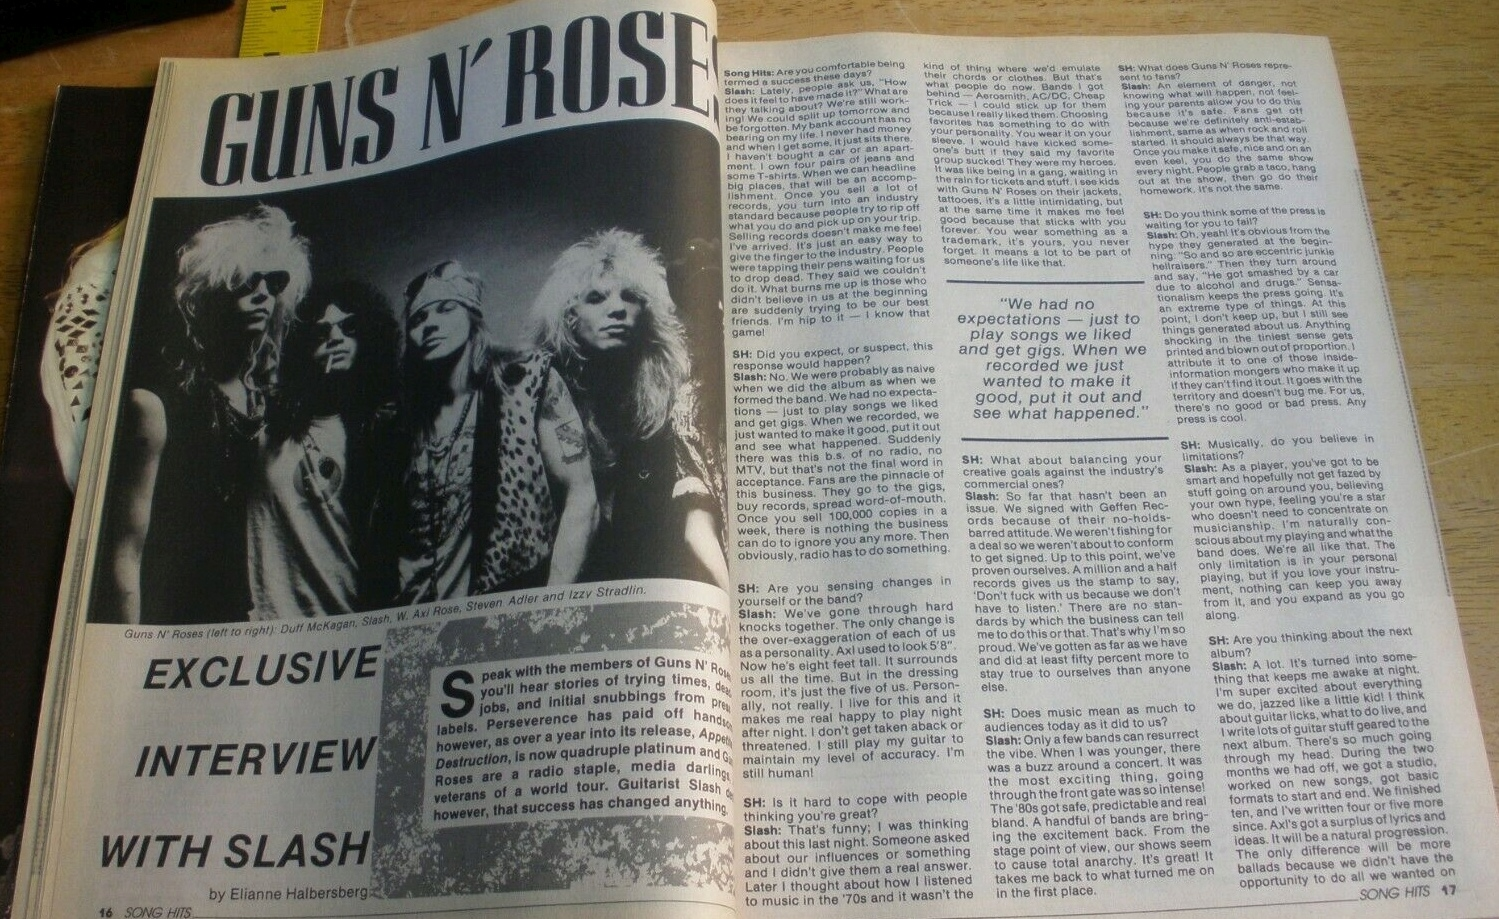 1989.02.DD - Song Hits - Interview with Slash 1989_032